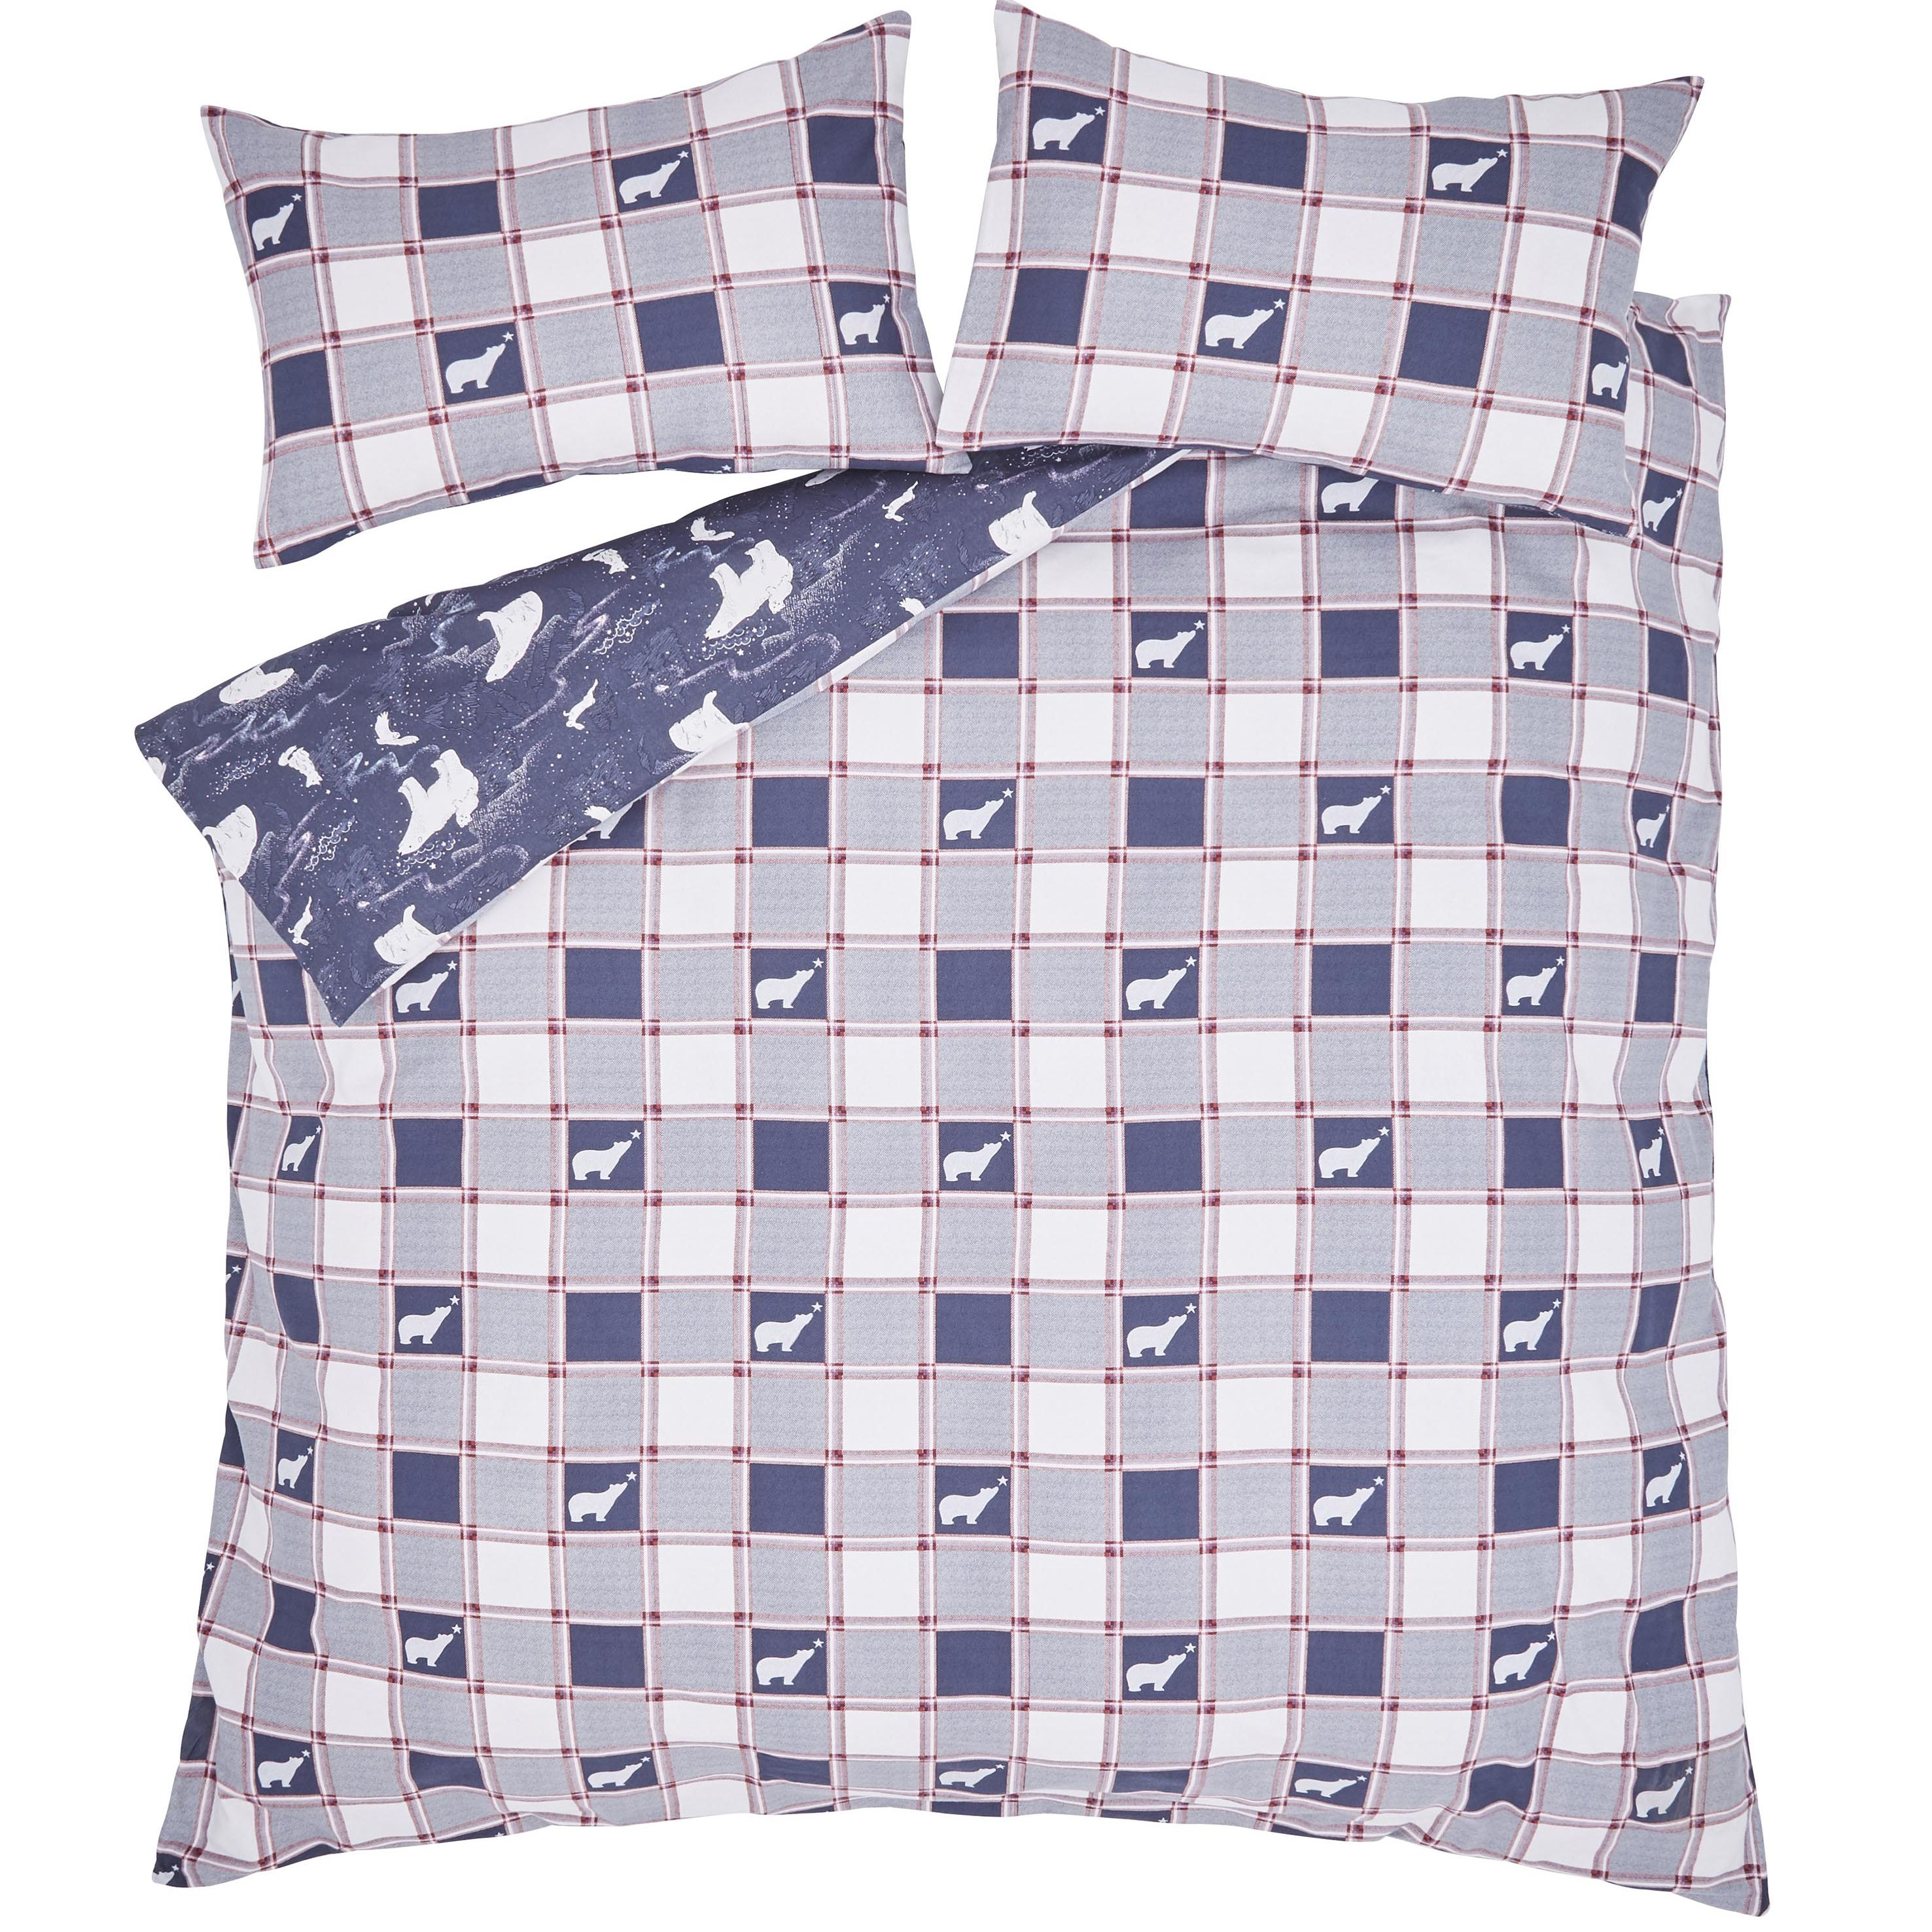 XMAS POLAR BEAR SUPER KING QUILT SET - NAVY